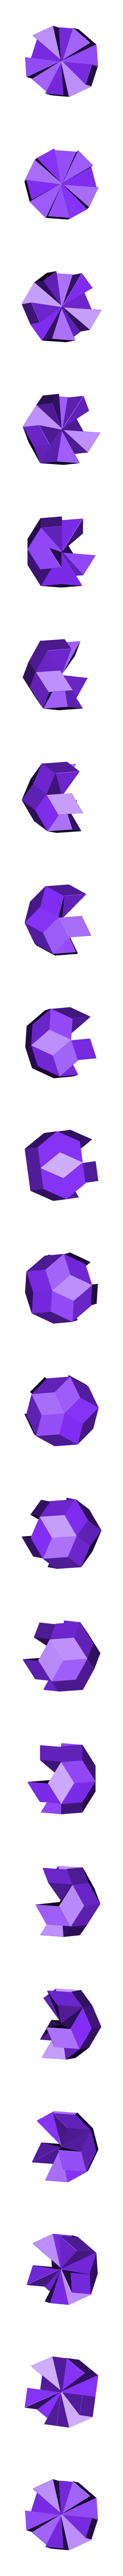 Rh_T_Half_LoosePartB_20mm.stl Download free STL file Dissection of a Rhombic Triacontahedron, Golden Ratio • Model to 3D print, LGBU